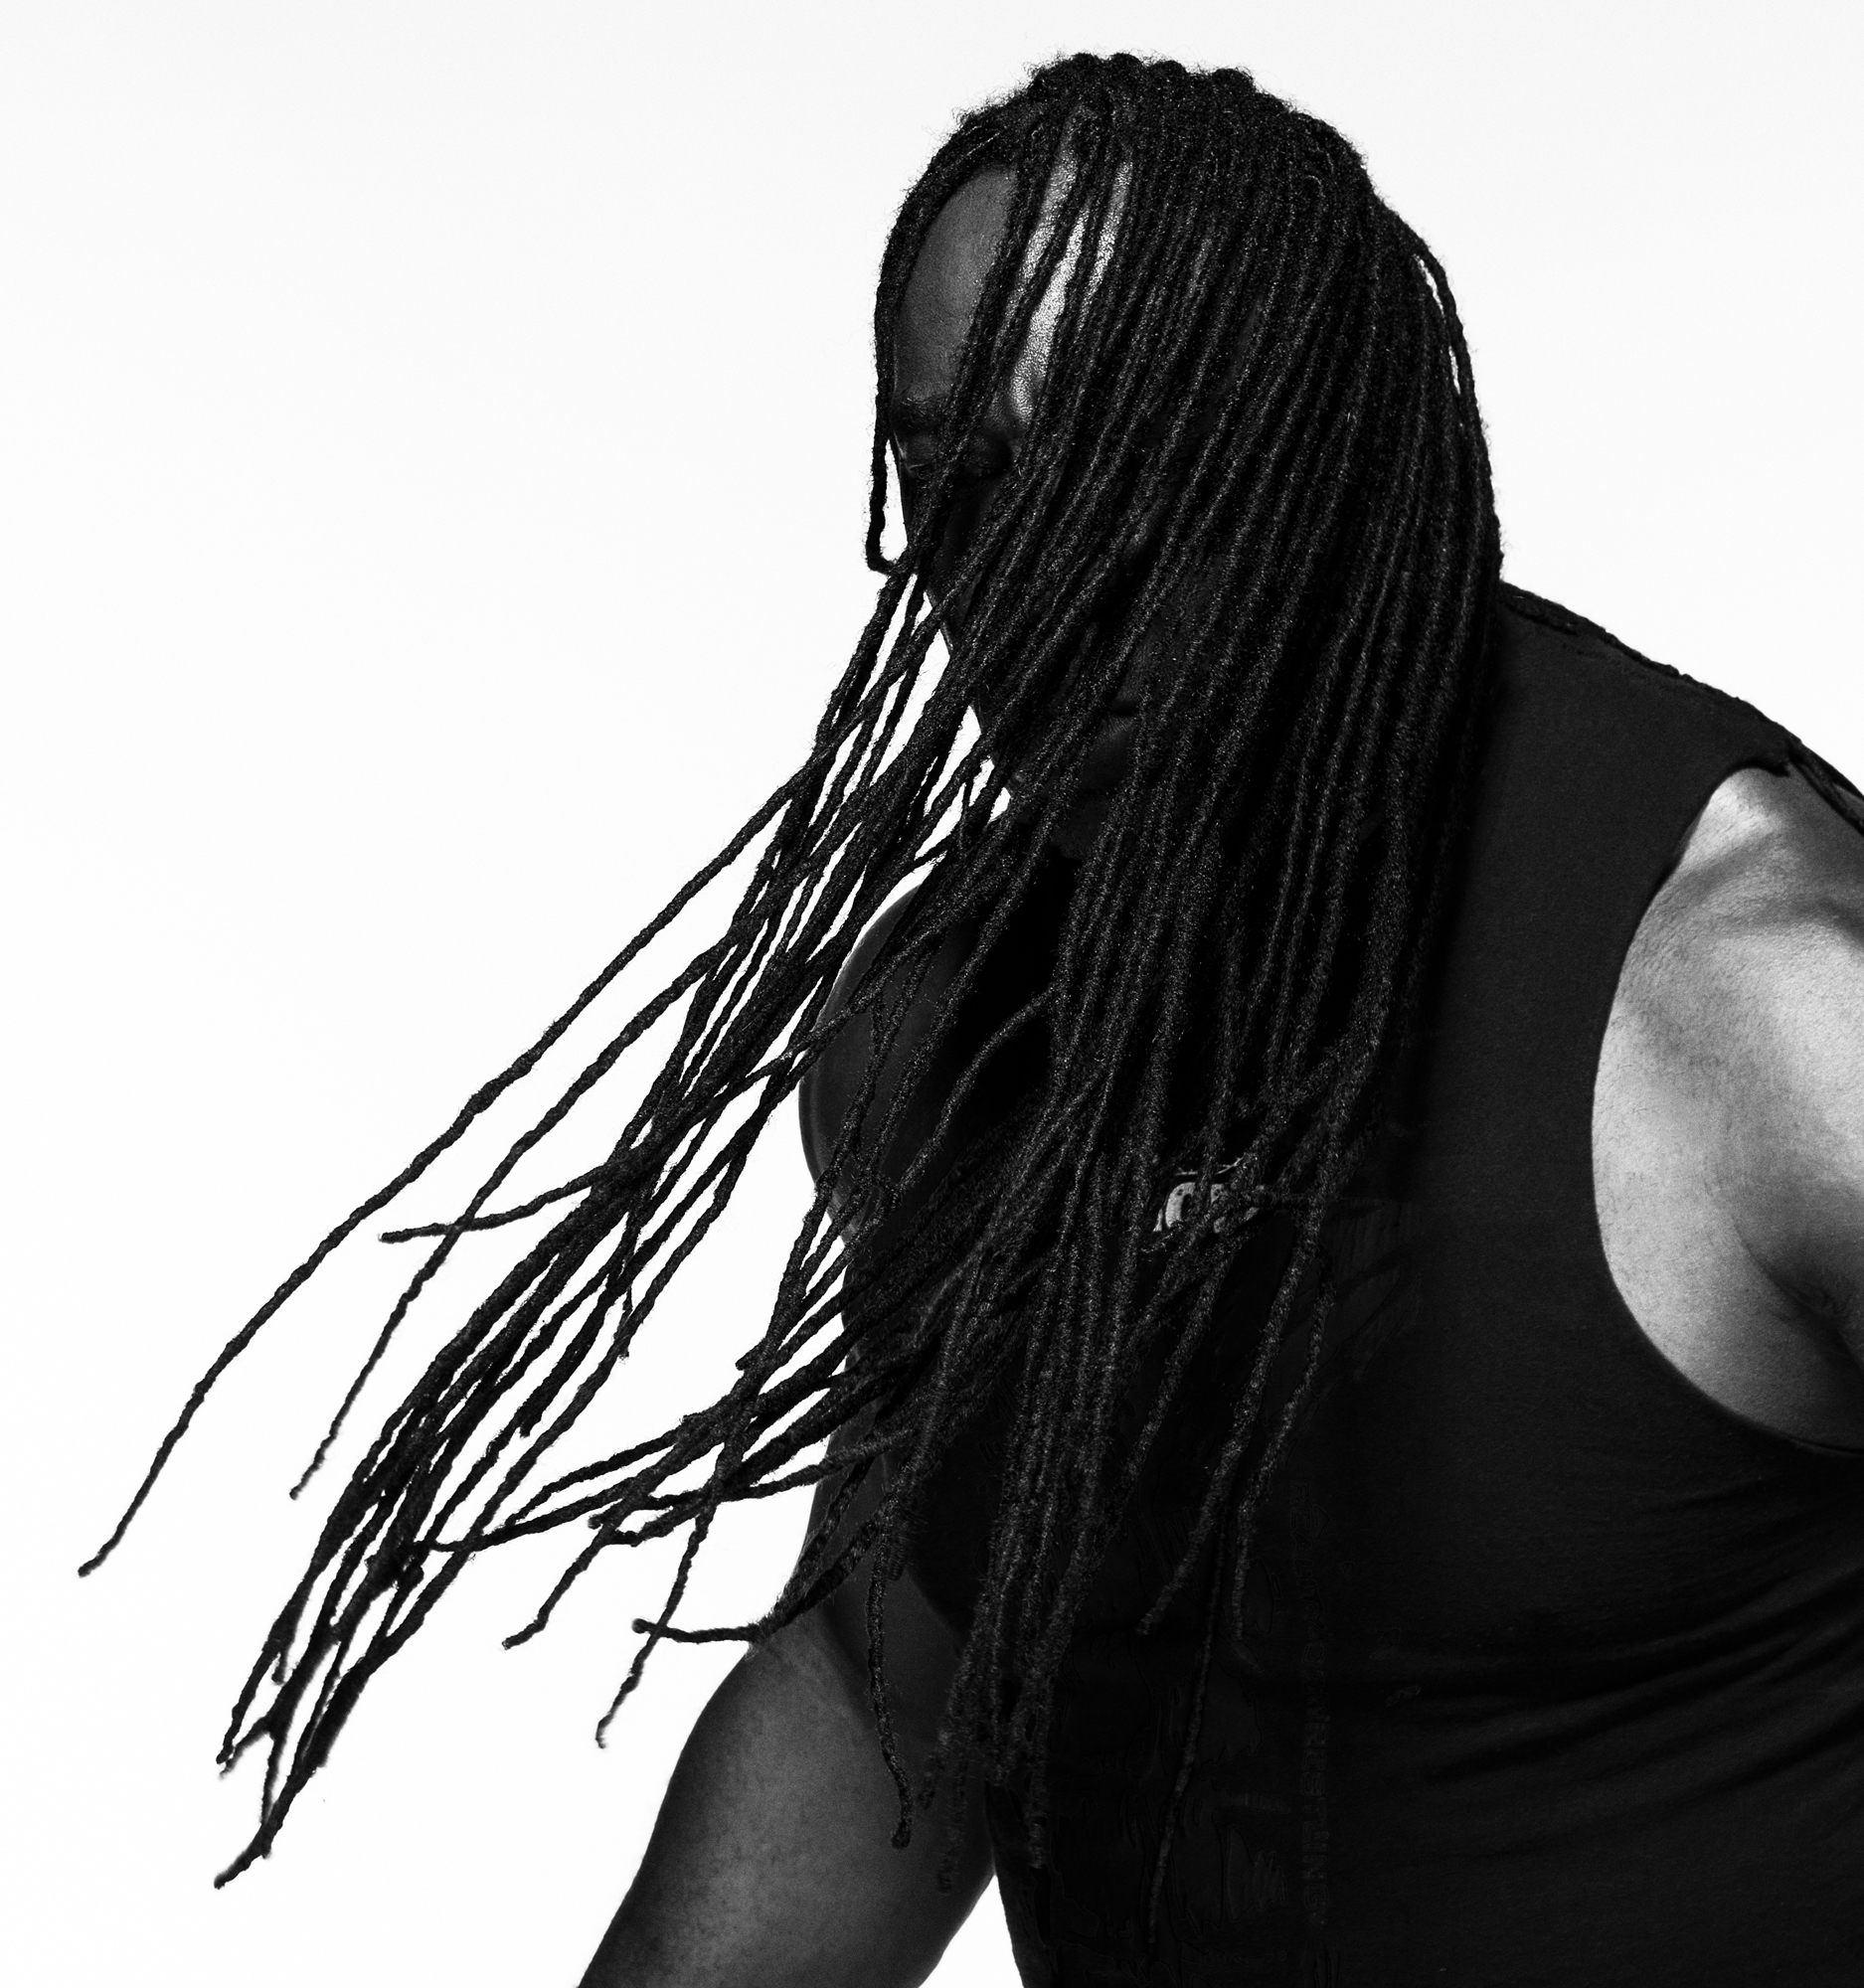 Professional wrestler Booker T's raw life